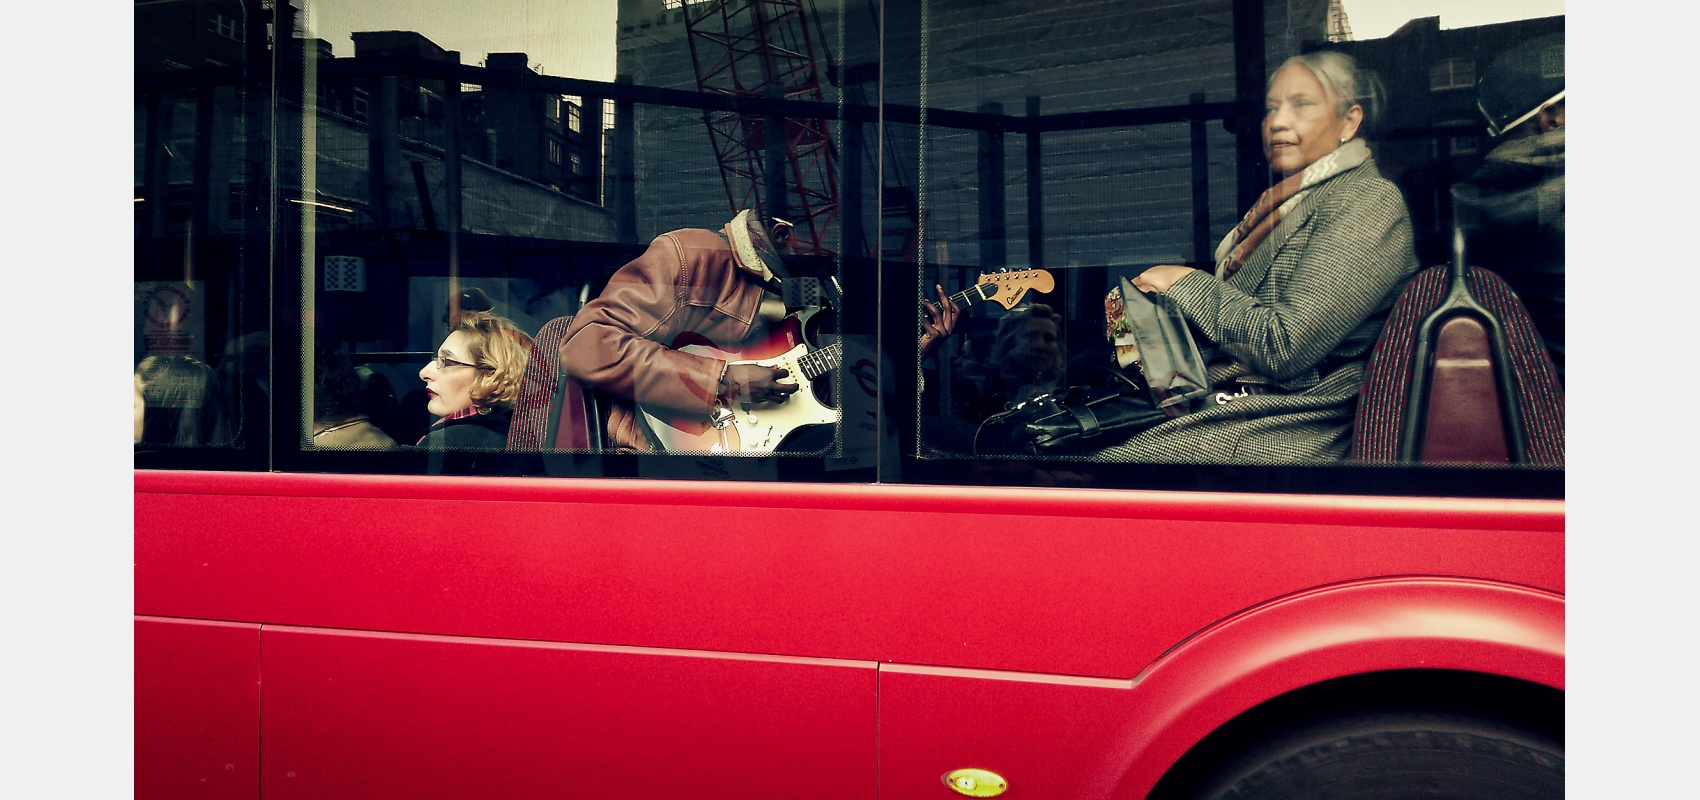 People, places, London, red, bus, Musician, playing, guitar, passengers